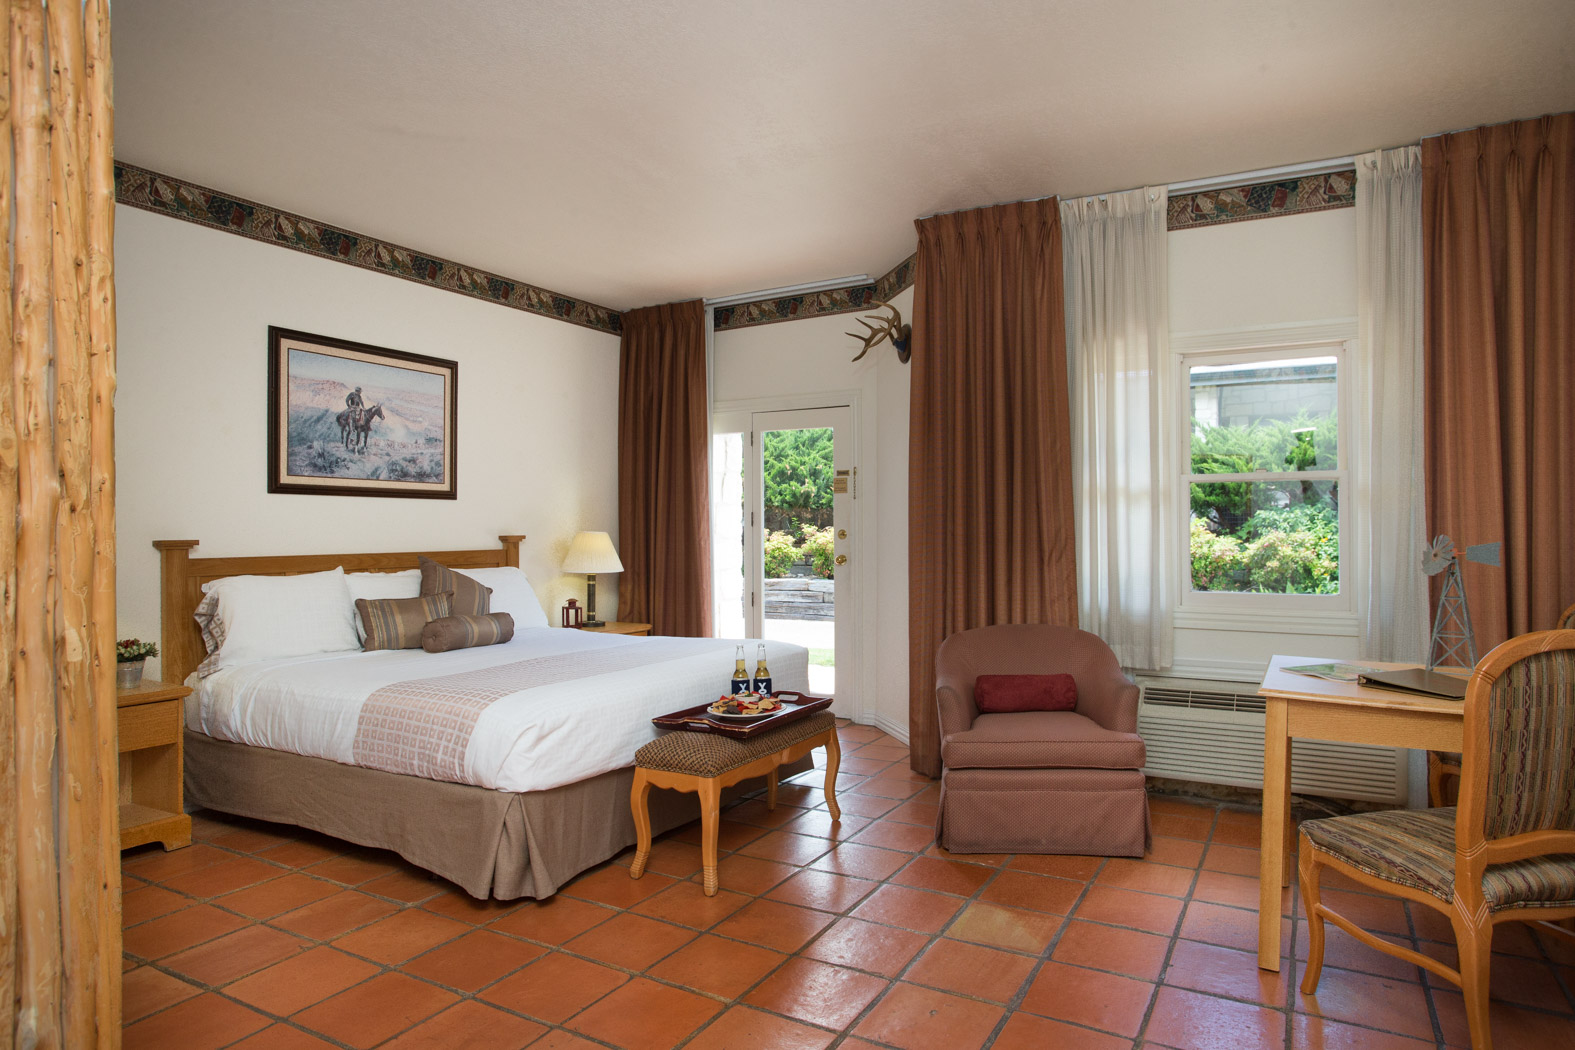 room with mexican tile floors, king bed, adjacent to double doors leading outside and seating area